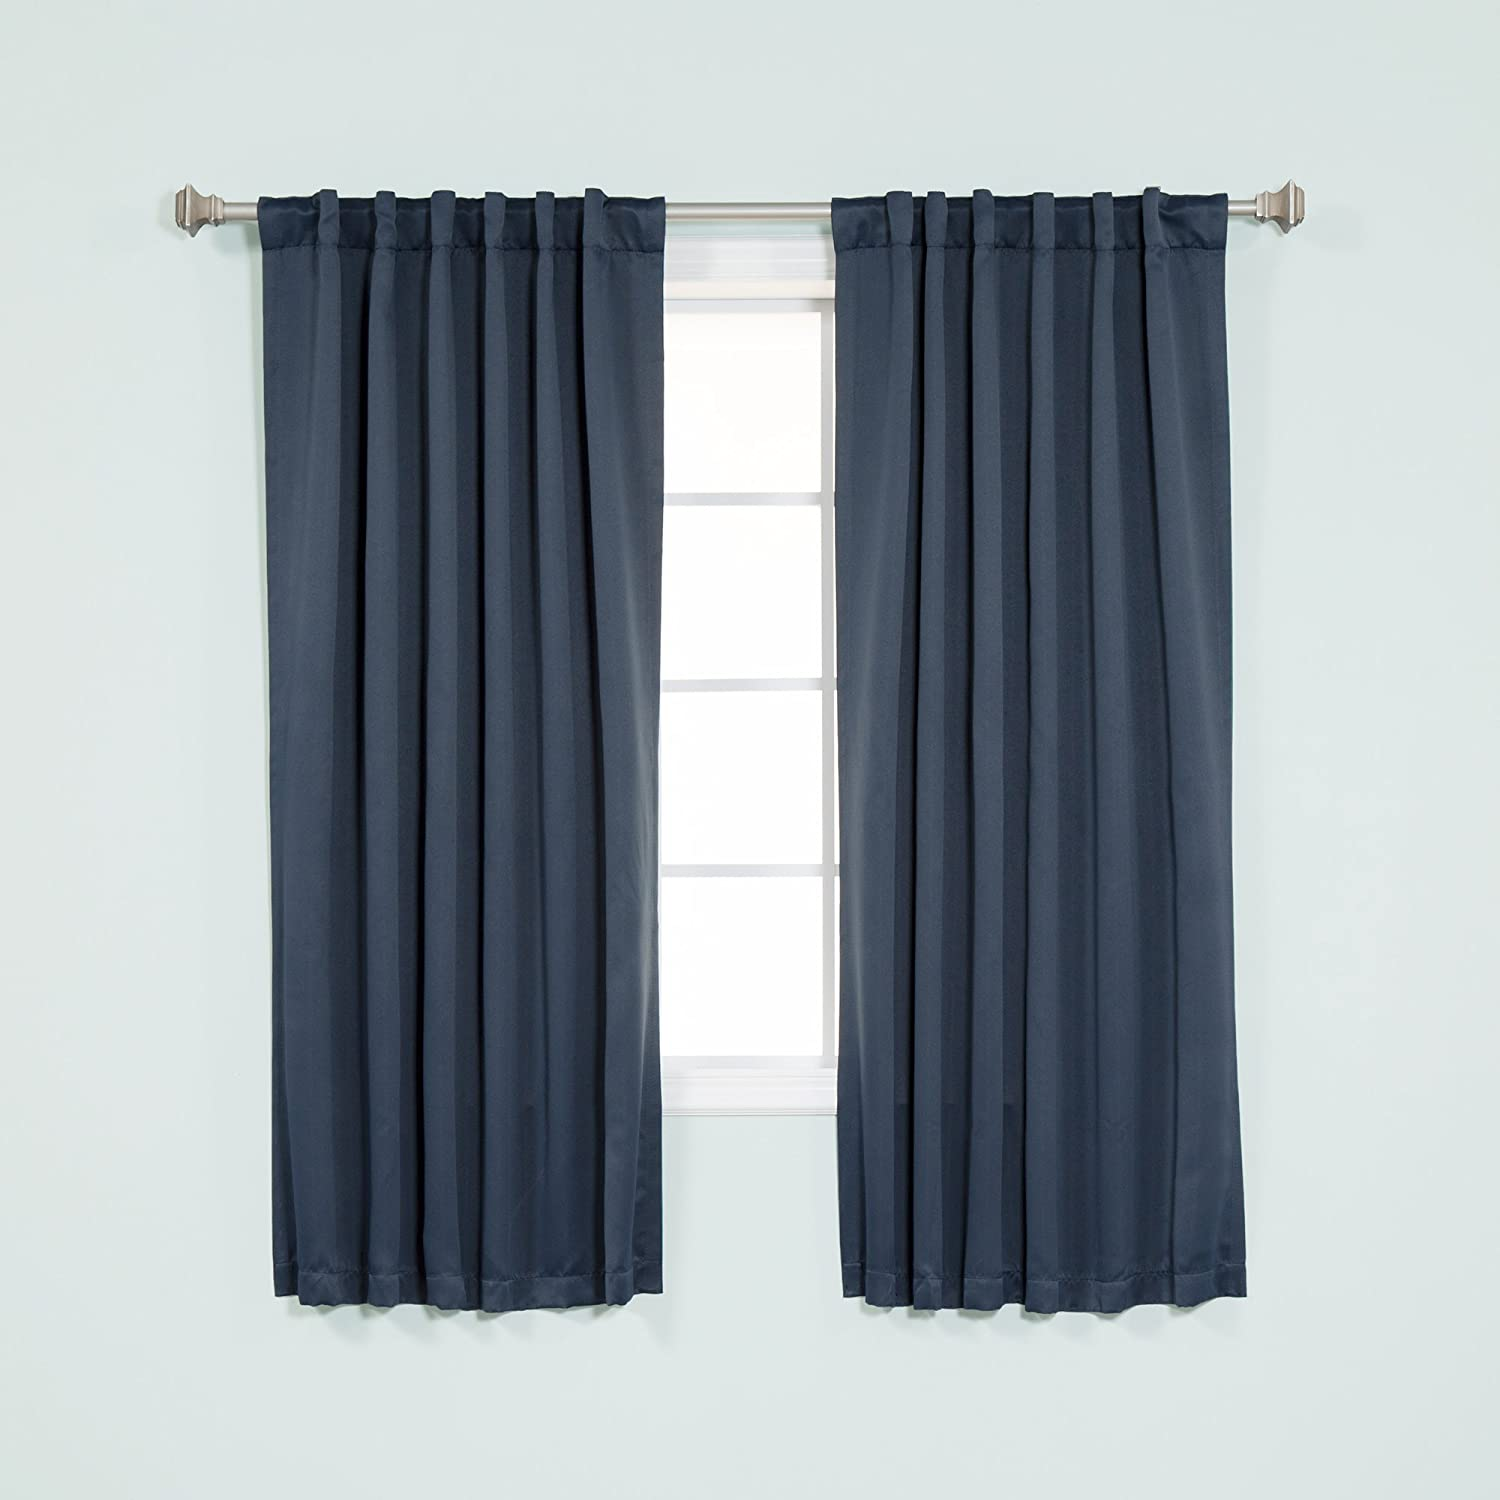 "Best Home Fashion Premium Blackout Curtain Panels - Solid Thermal Insulated Window Treatment Blackout Drapes for Bedroom - Back Tab & Rod Pocket (52"" W x 63"" L, BO Navy)"